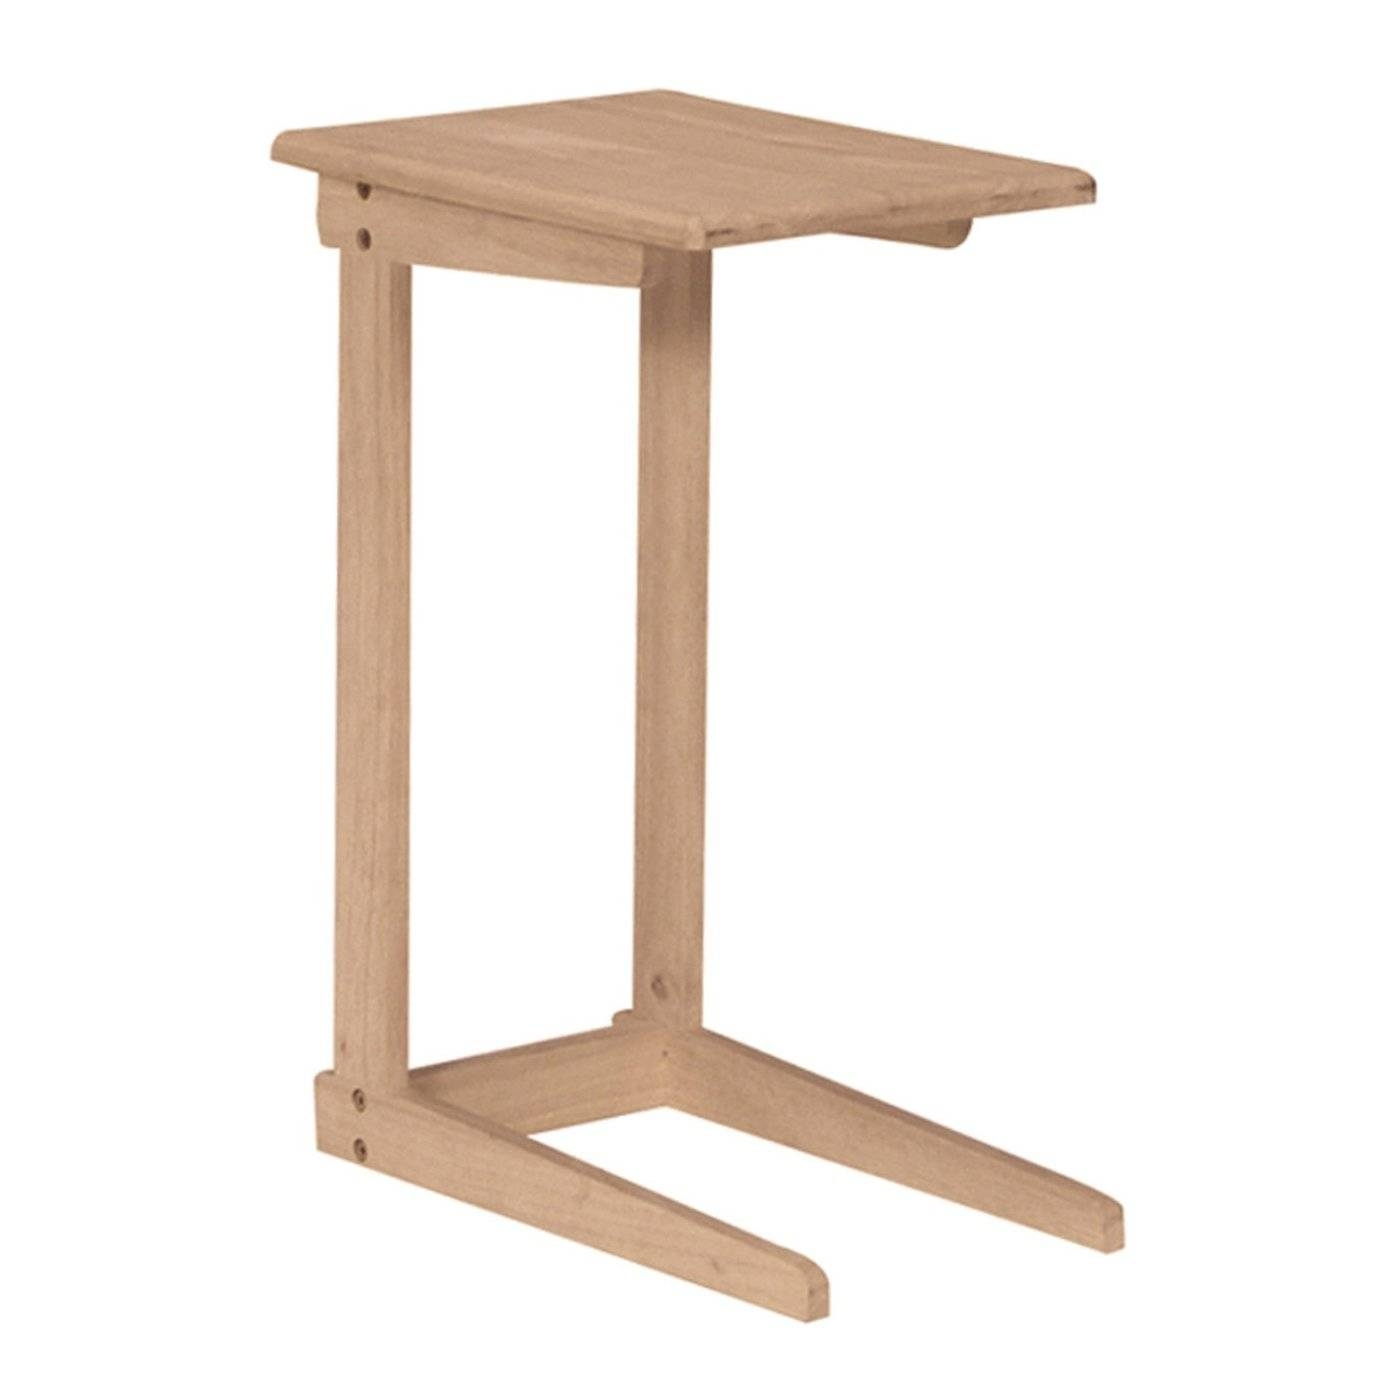 International Concepts Ot-10 Sofa Server Tray Table | The Mine regarding Under Sofa Tray Tables (Image 4 of 15)